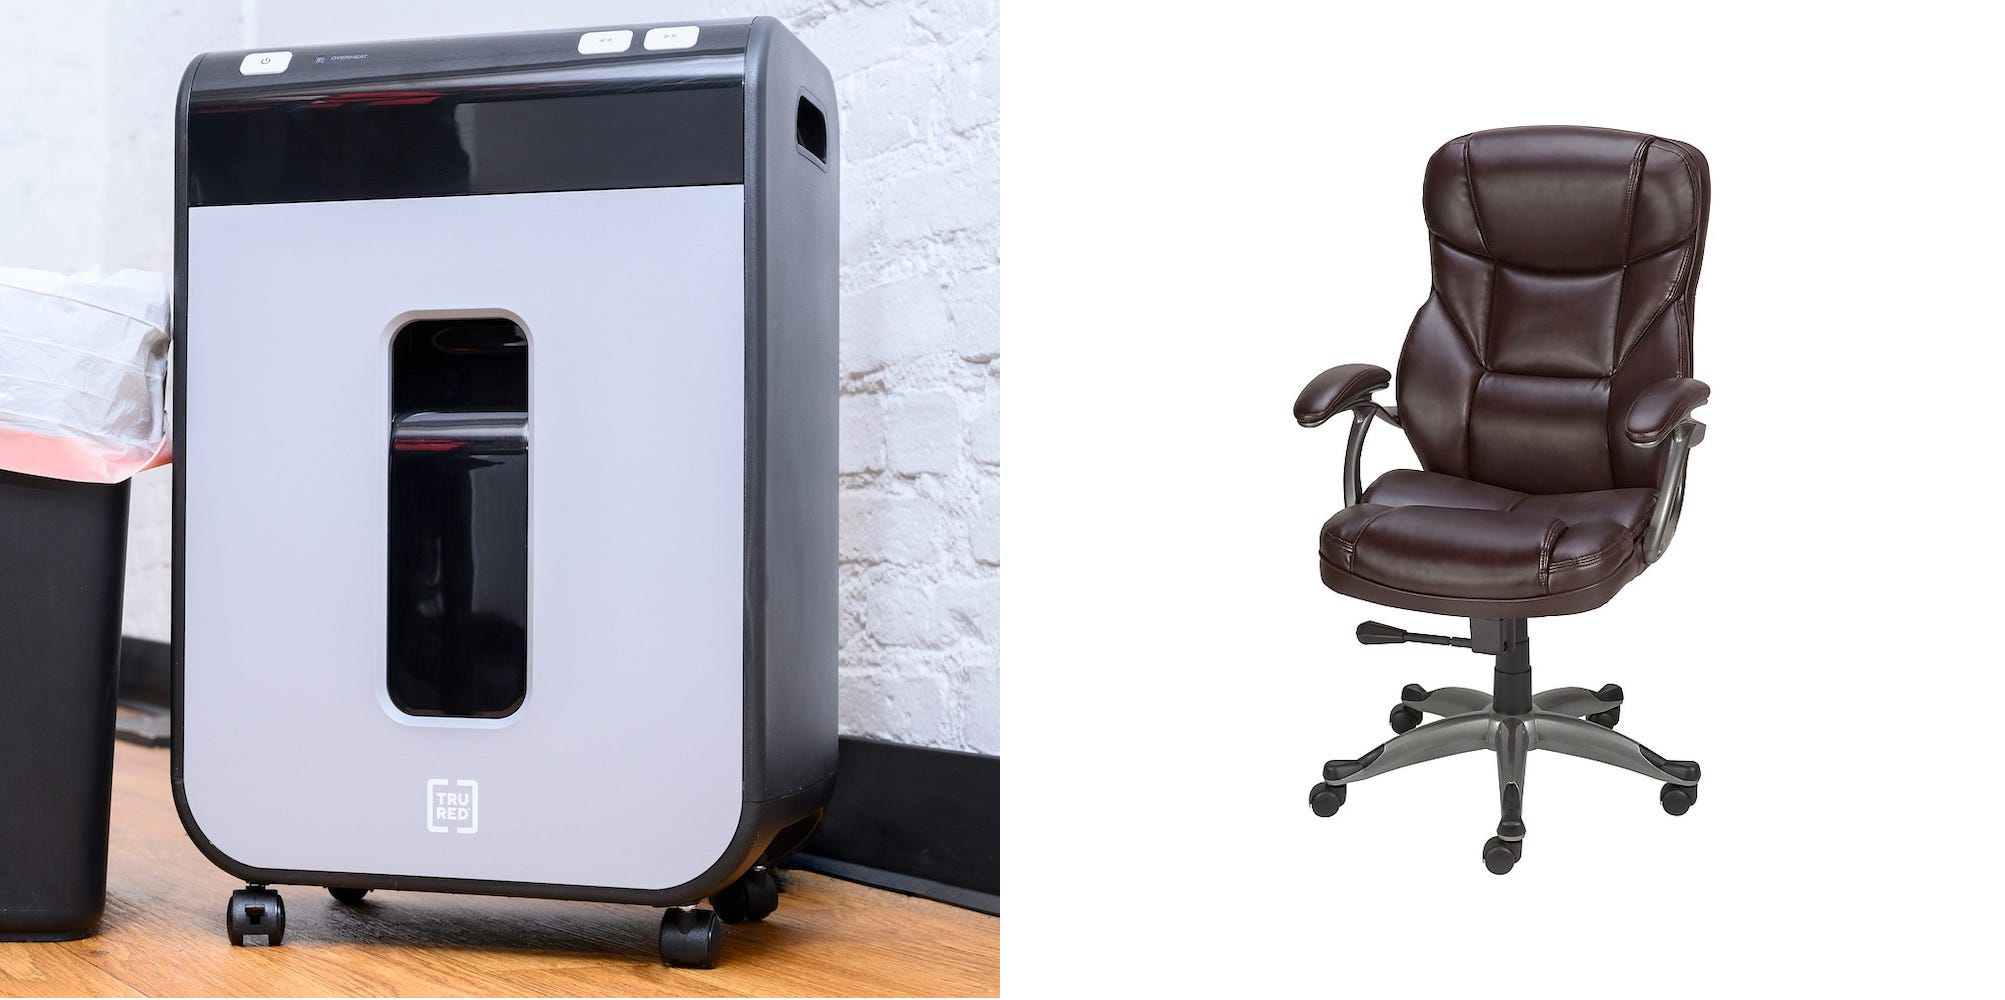 Save on office chairs, paper shredders and more